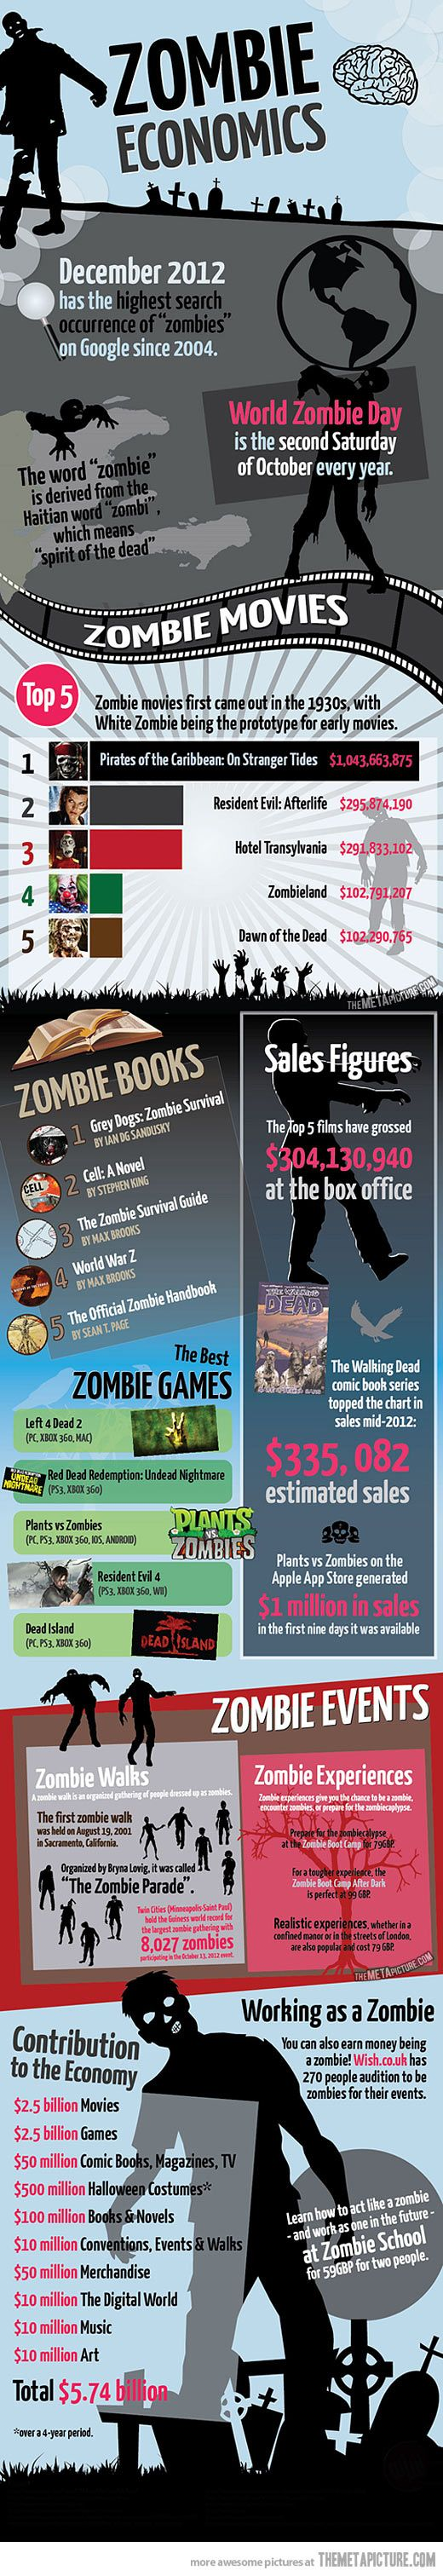 The popularity of zombies…